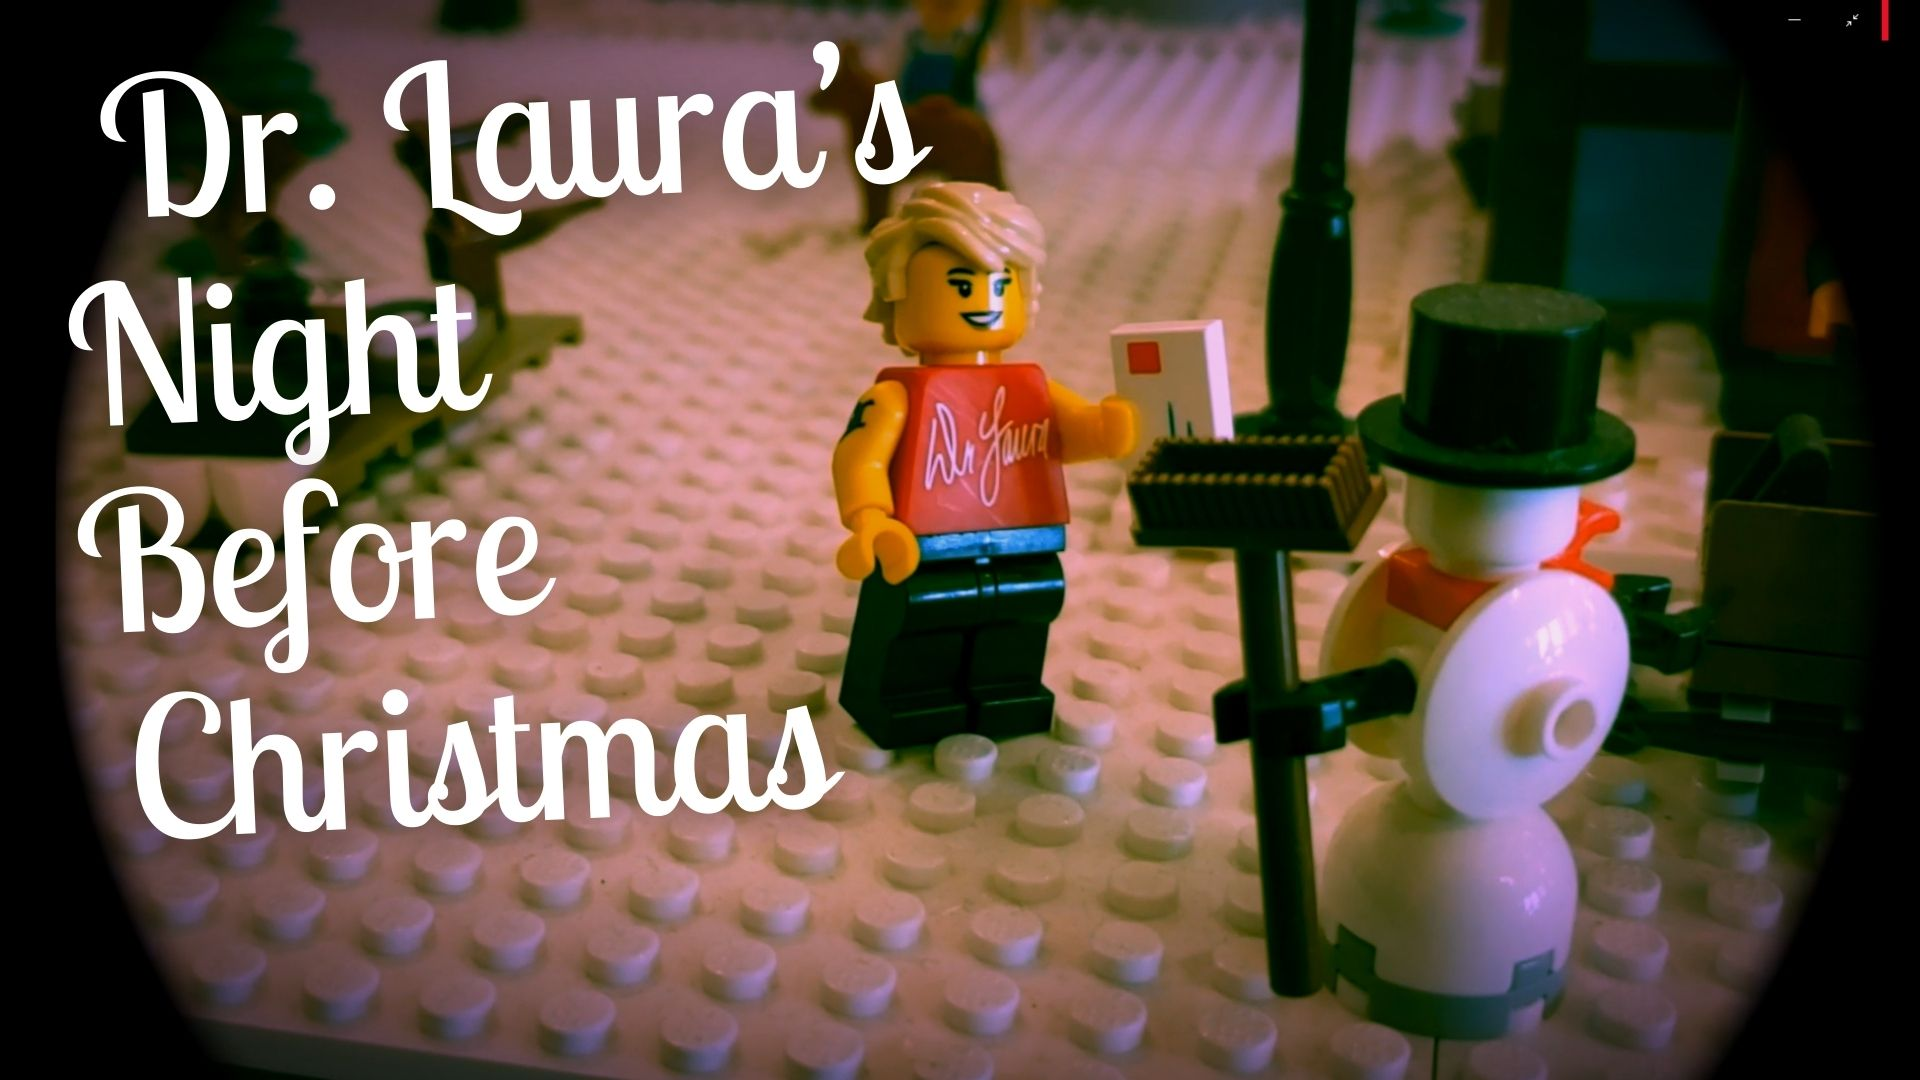 YouTube: Dr. Laura's Night Before Christmas